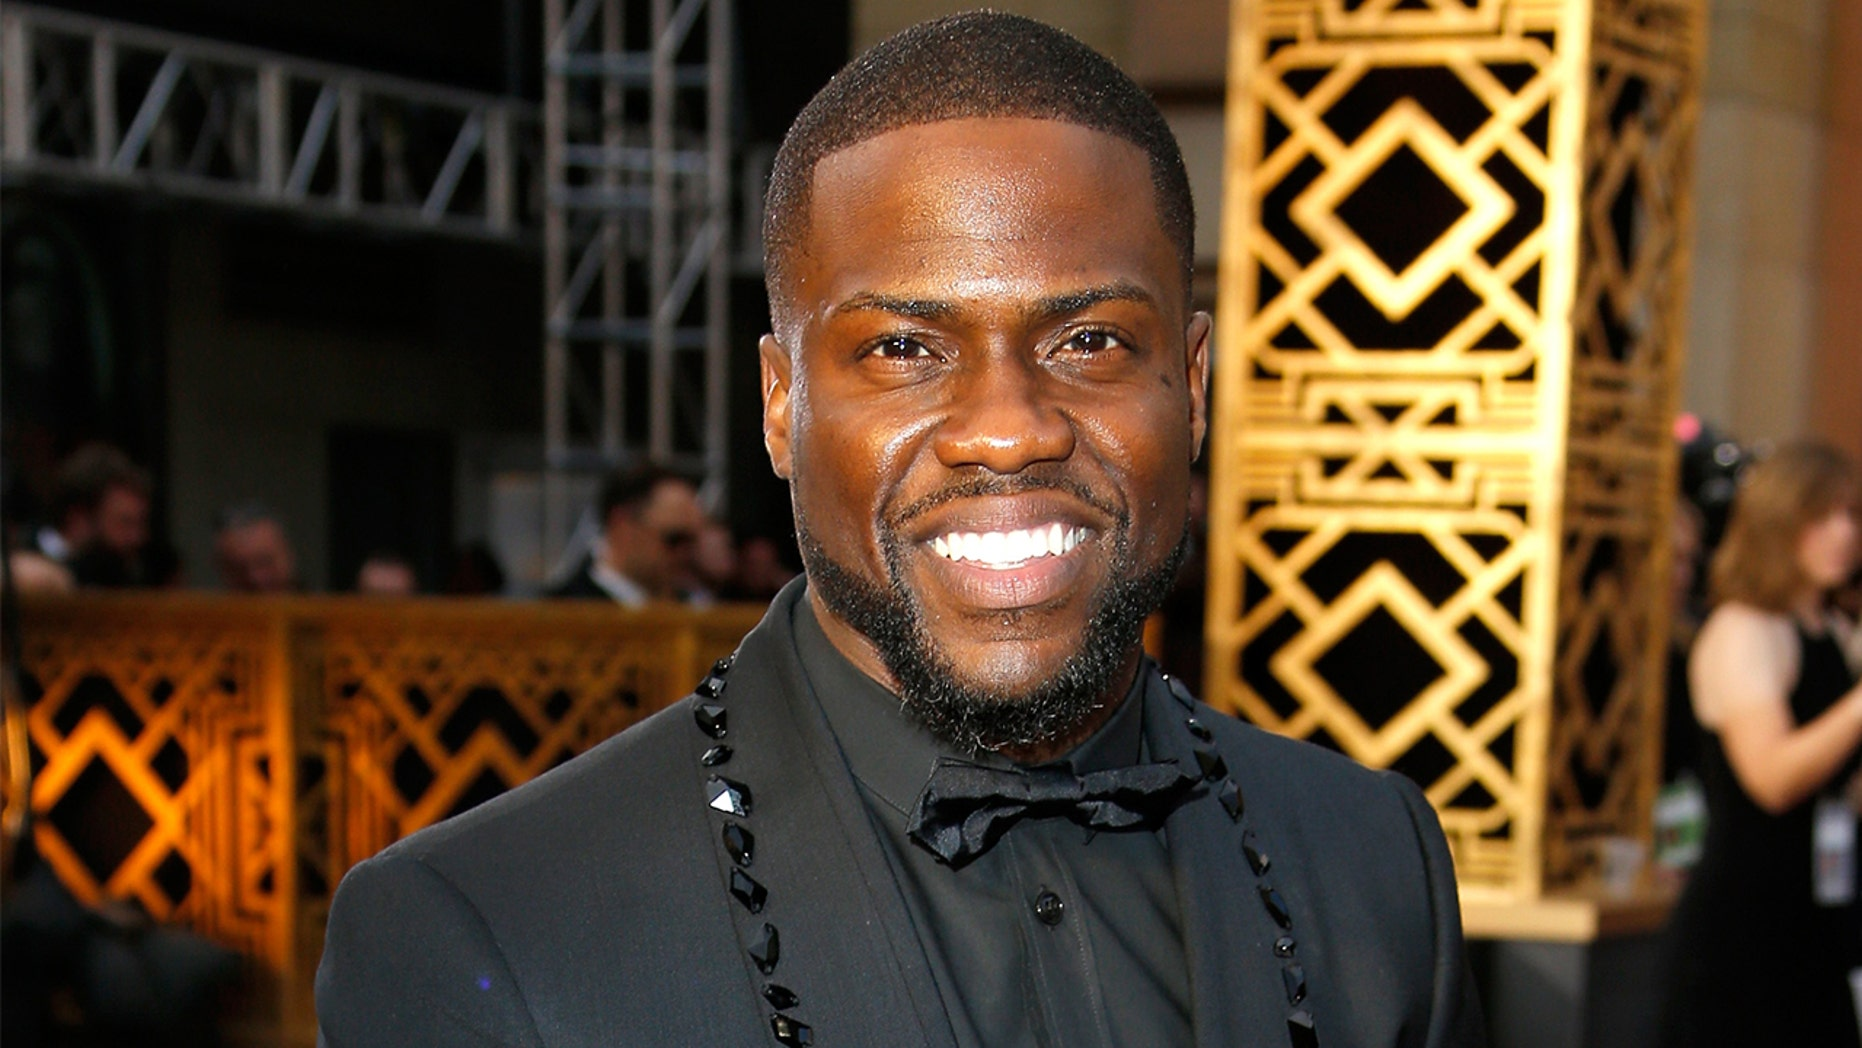 The Academy of Motion Picture Arts and Sciences confirmed Actor and Comedian Kevin Hart will host the 2019  Academy Awards (Oscars).